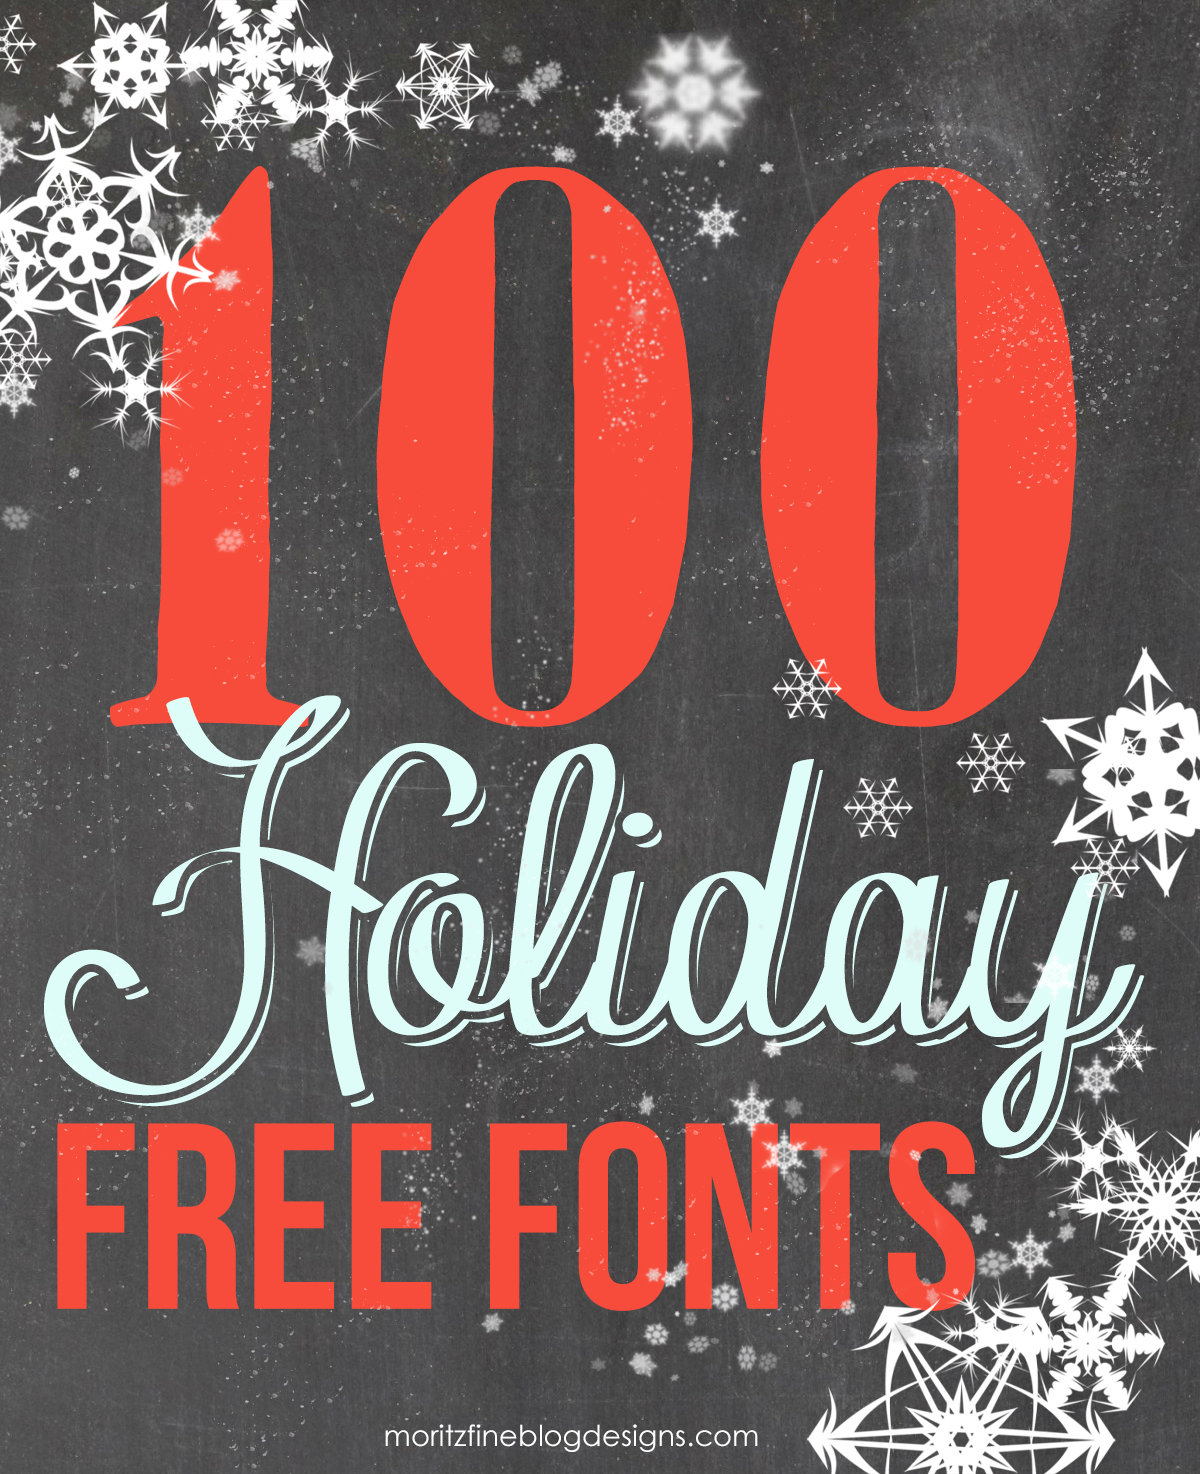 Different Is Awesome Holiday Package: 100 Best Holiday Free Fonts